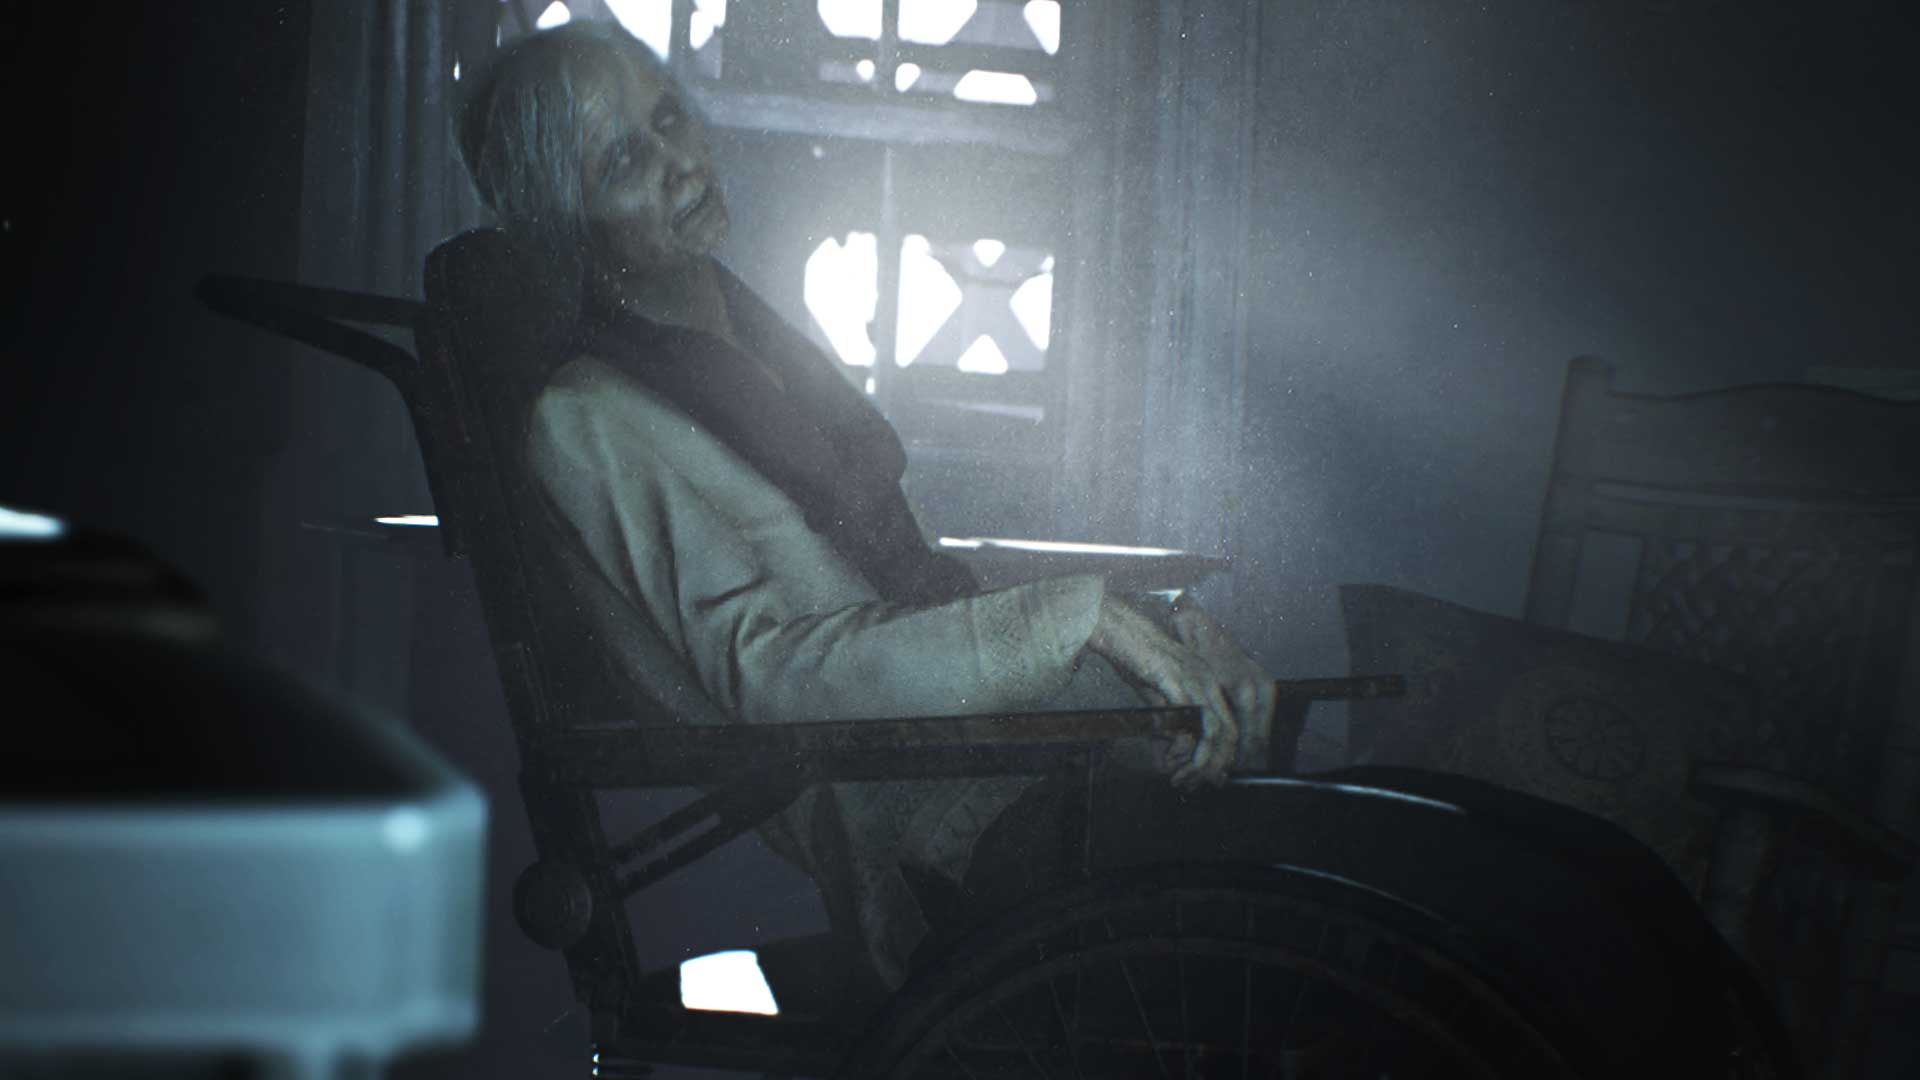 Spoilers: Resident Evil 7's upcoming Not A Hero DLC will star an iconic character